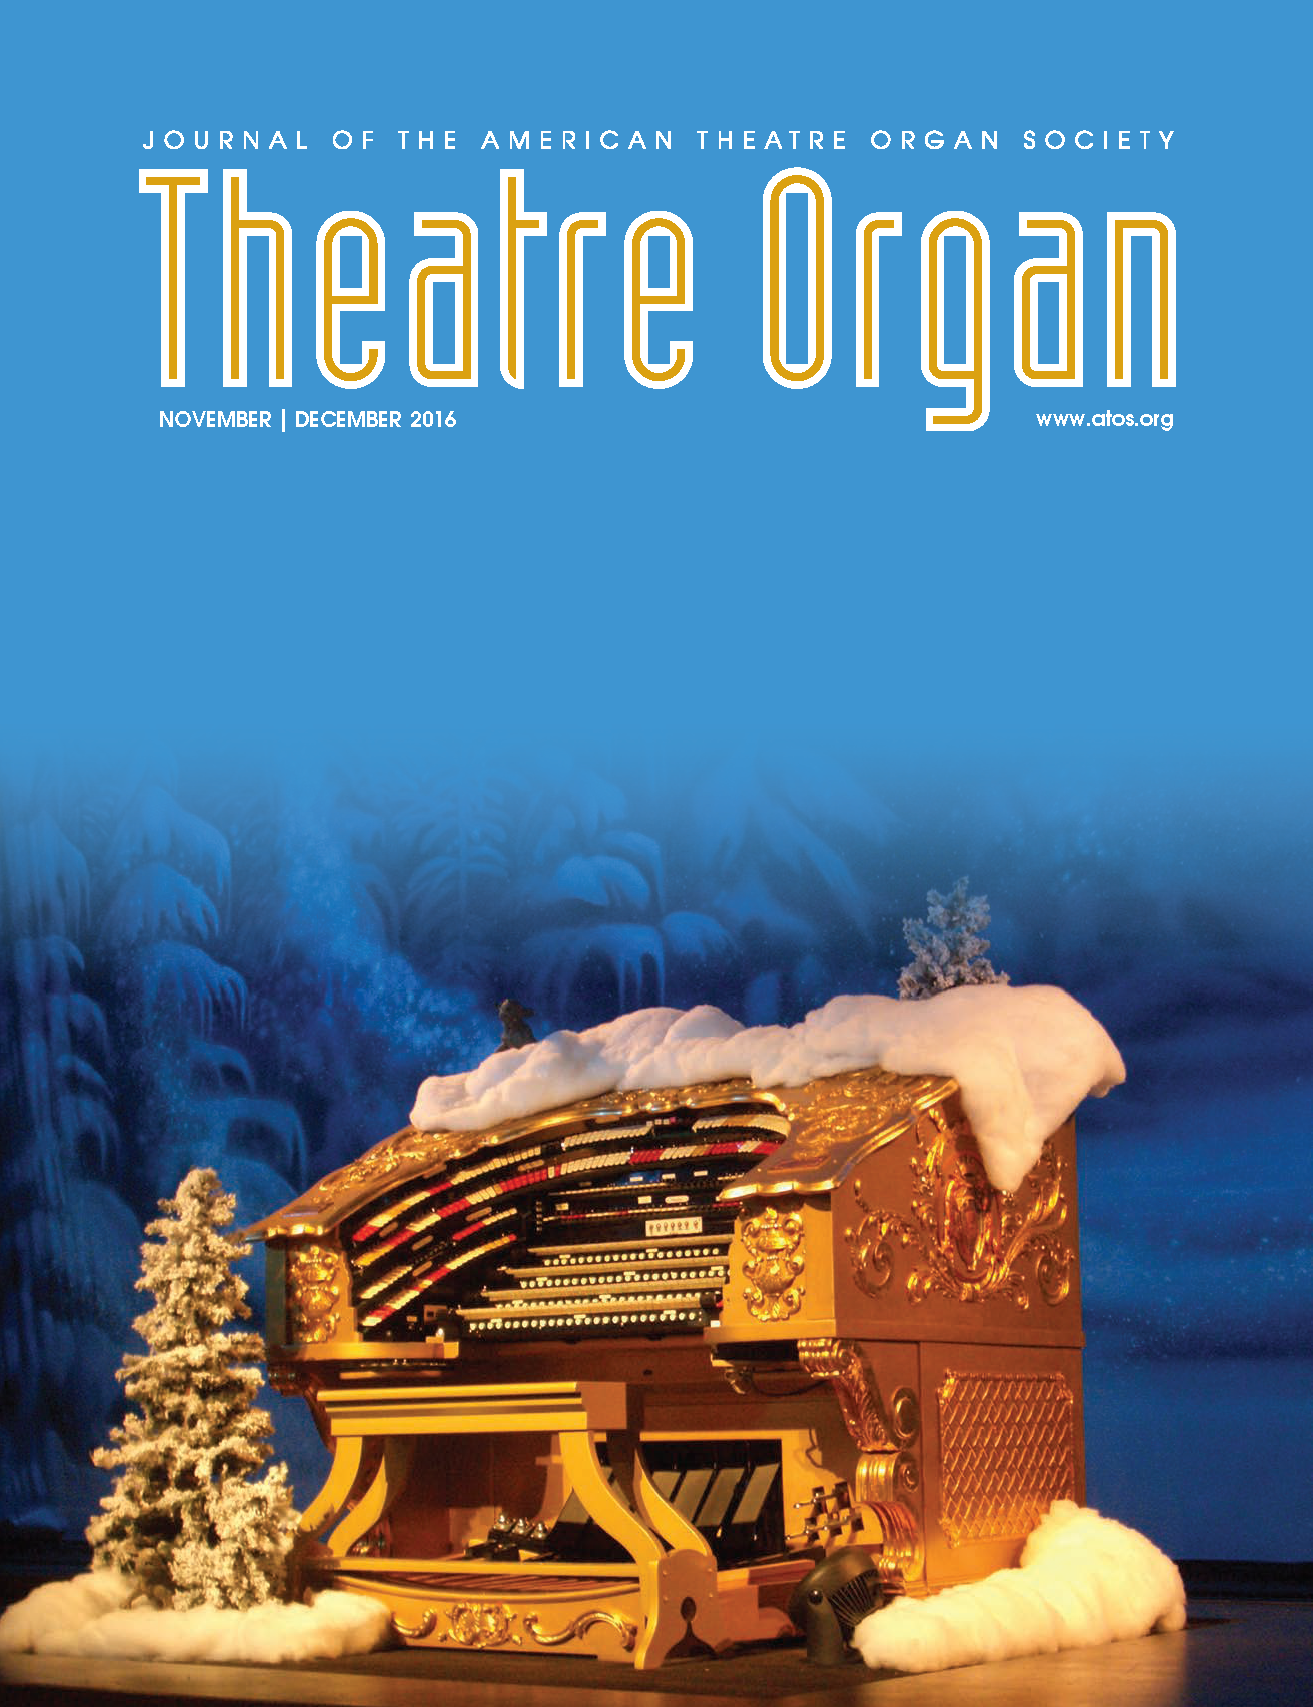 Theatre Organ, November - December 2016, Volume 58, Number 6